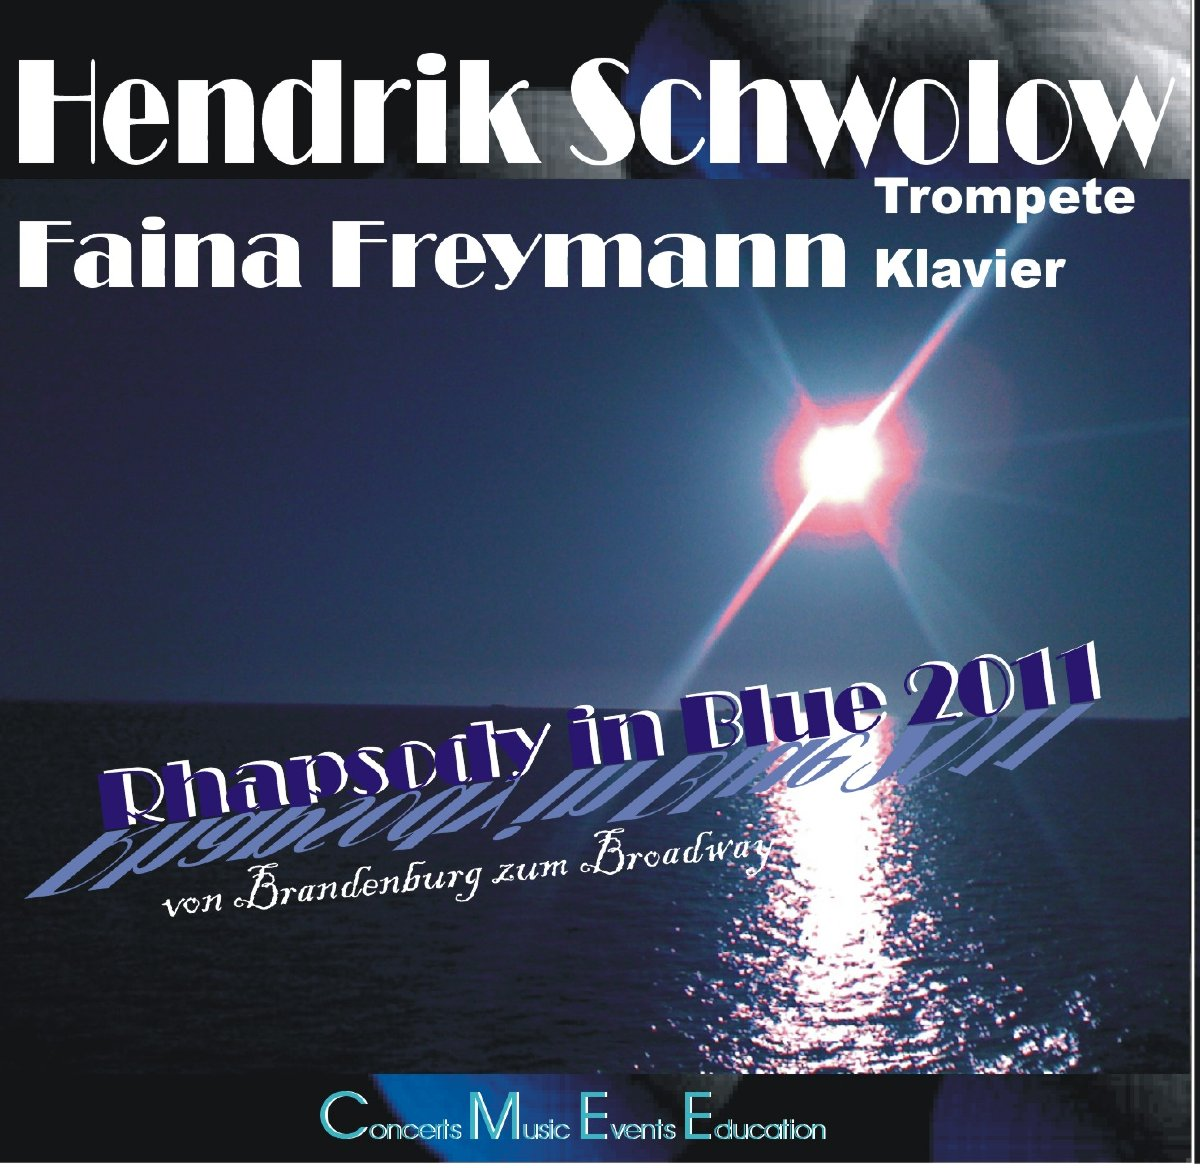 Klassik Rhapsody in blue 2011-CD Hendrik Schwolow